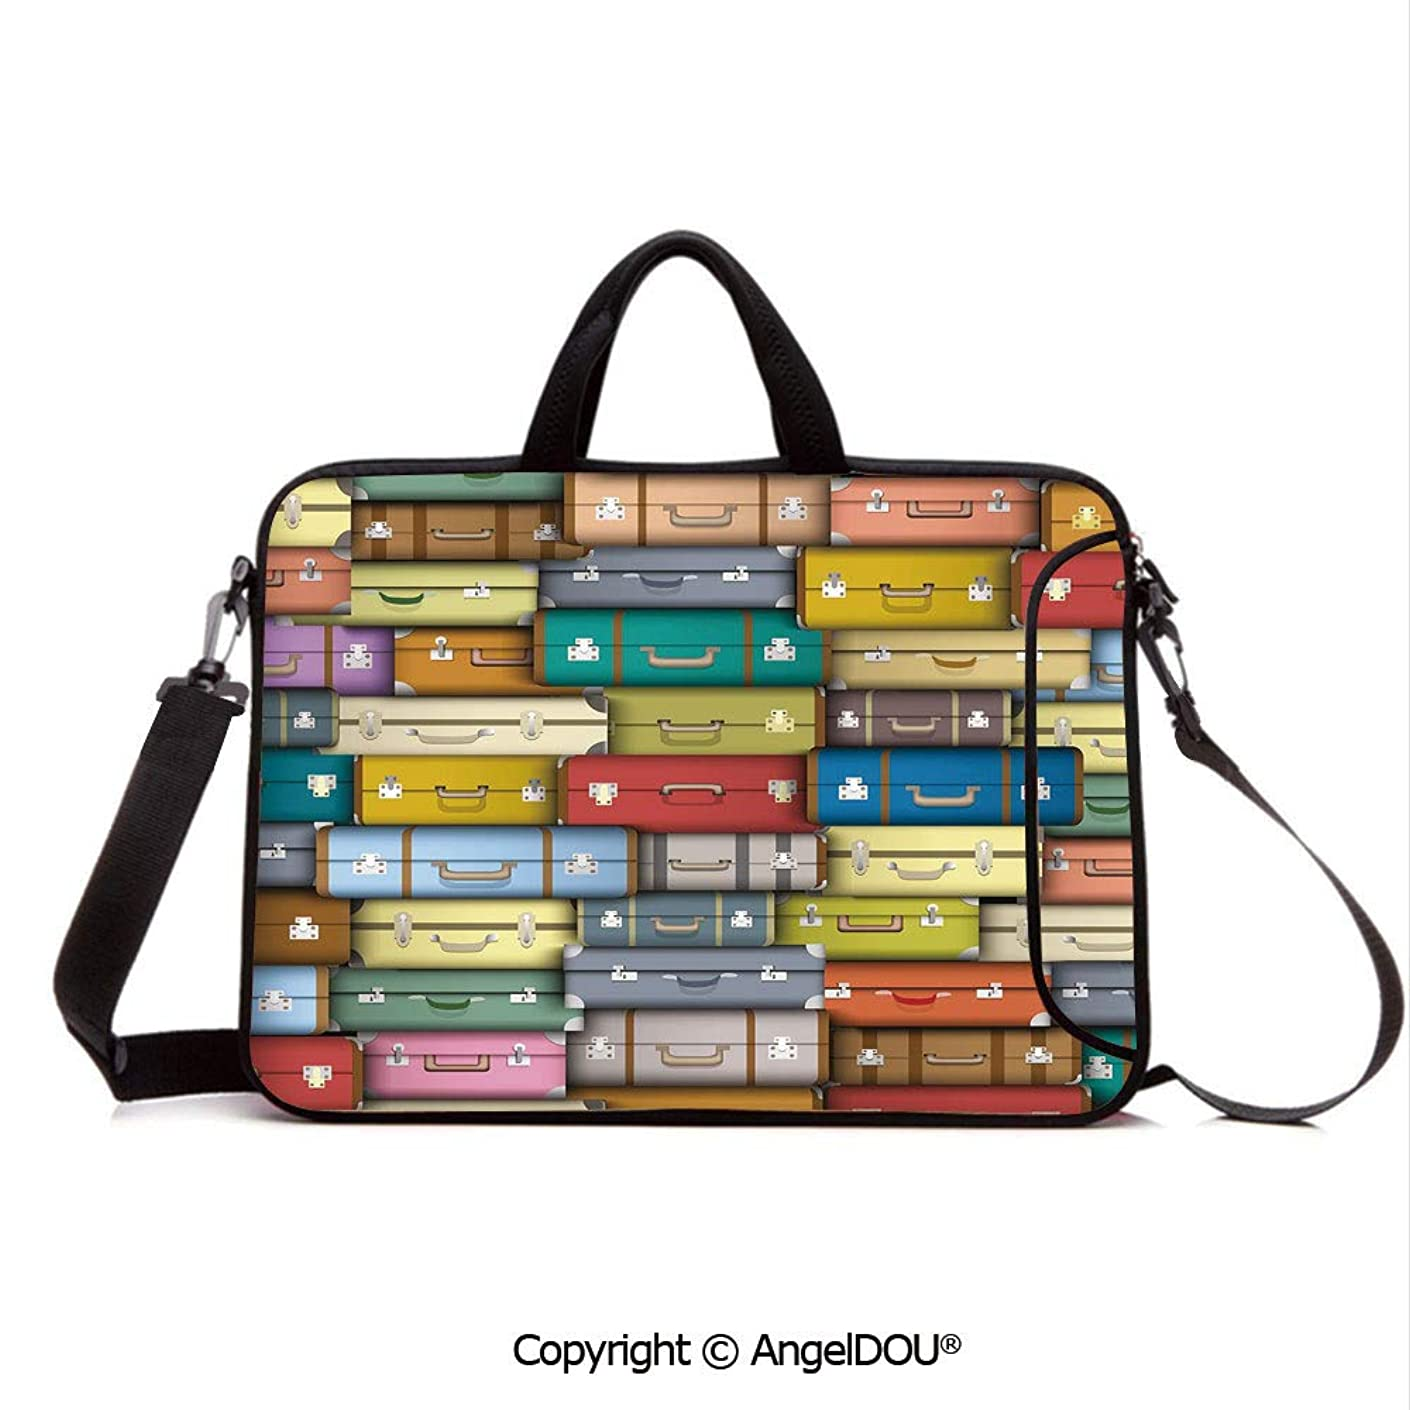 AngelDOU Neoprene Laptop Shoulder Bag Case Sleeve with Handle and Extra Pocket Colorful Suitcases Background Vintage Travel Voyage Holiday Themed Artful Design Compatible with MacBook/Ultrabook/HP/A